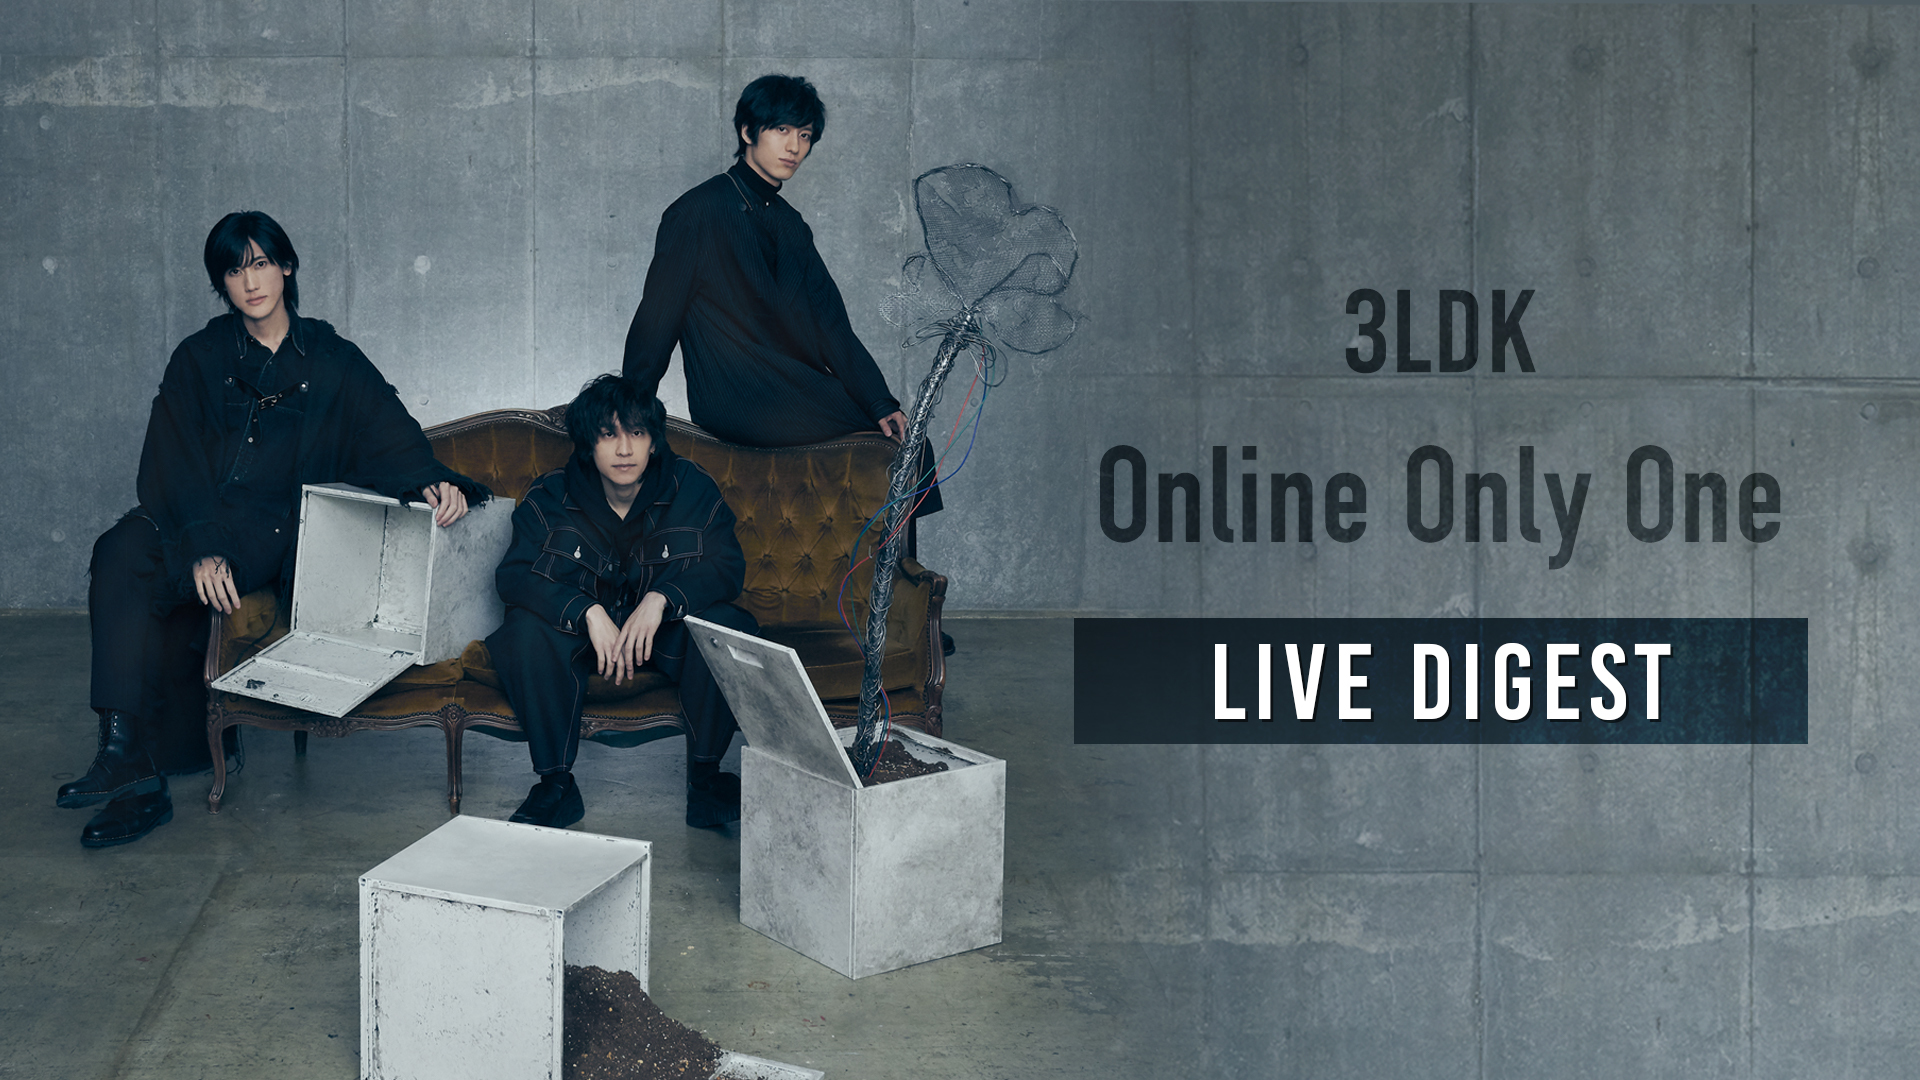 「3LDK SPECIAL LIVE -Online Only One-」LIVE DIGEST映像